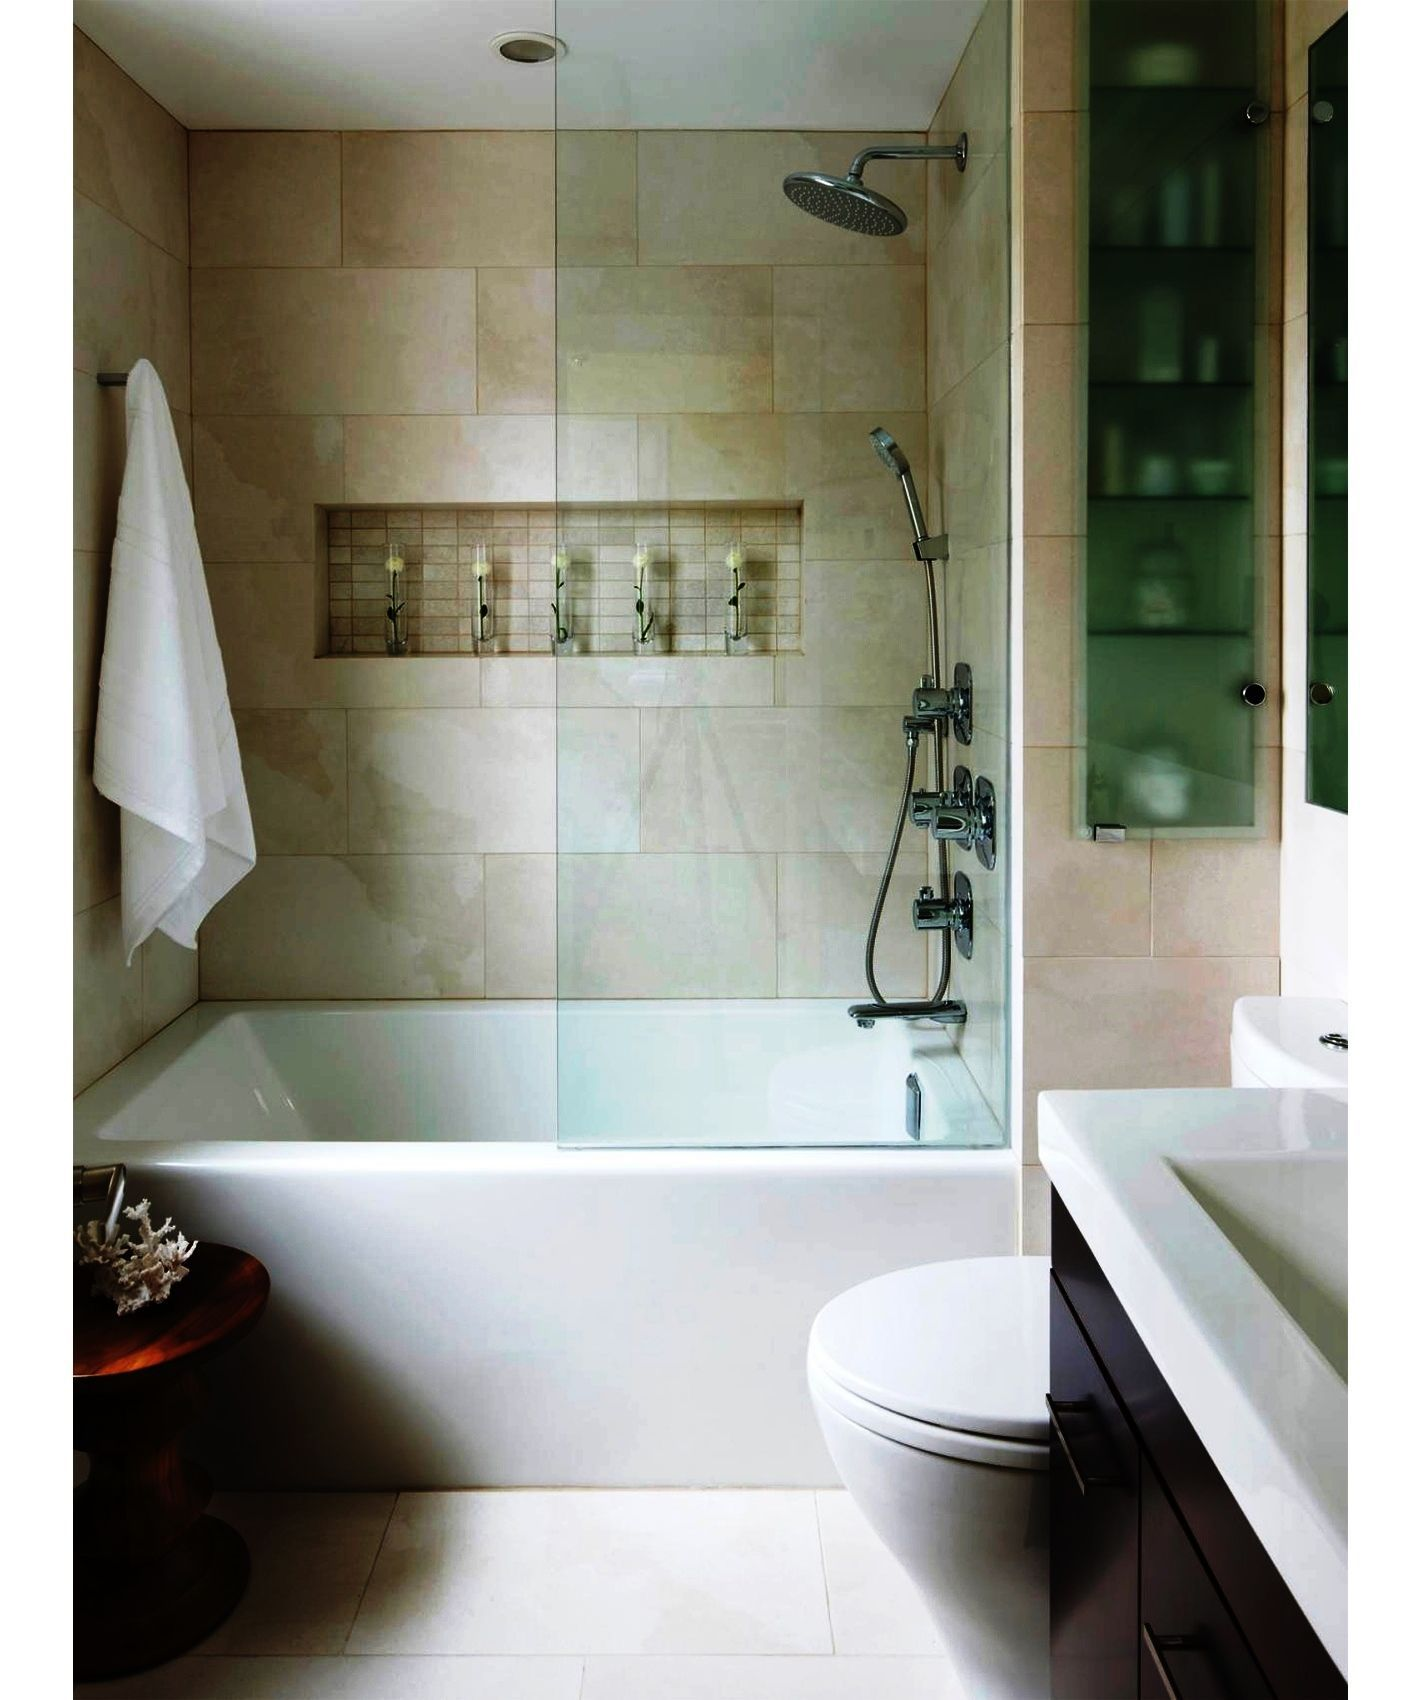 Bathroom Remodeling Ideas   Search Restroom Designs And Also Decorating  Ideas. Discover Motivation For Your Shower Room Remodel, Consisting Of  Colors, ...